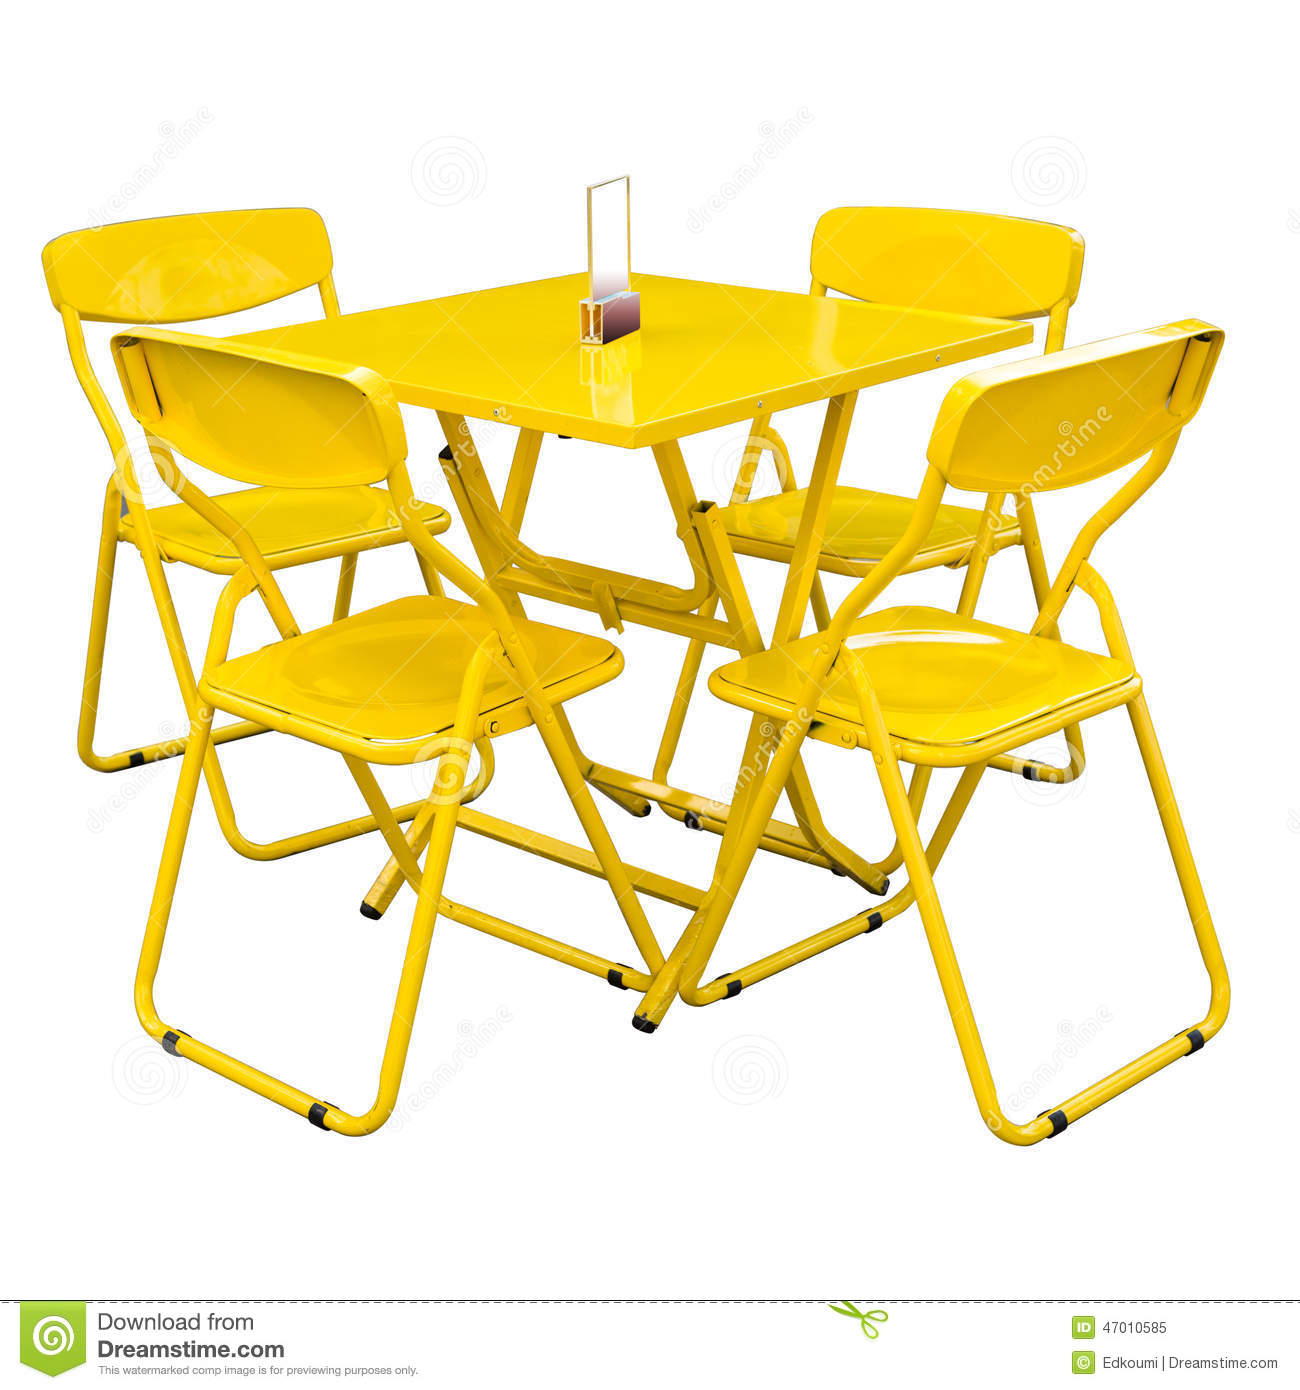 Yellow Metal Cafe Table And Chairs Outdoors On Whitewith Clipping - Metal cafe table and chairs